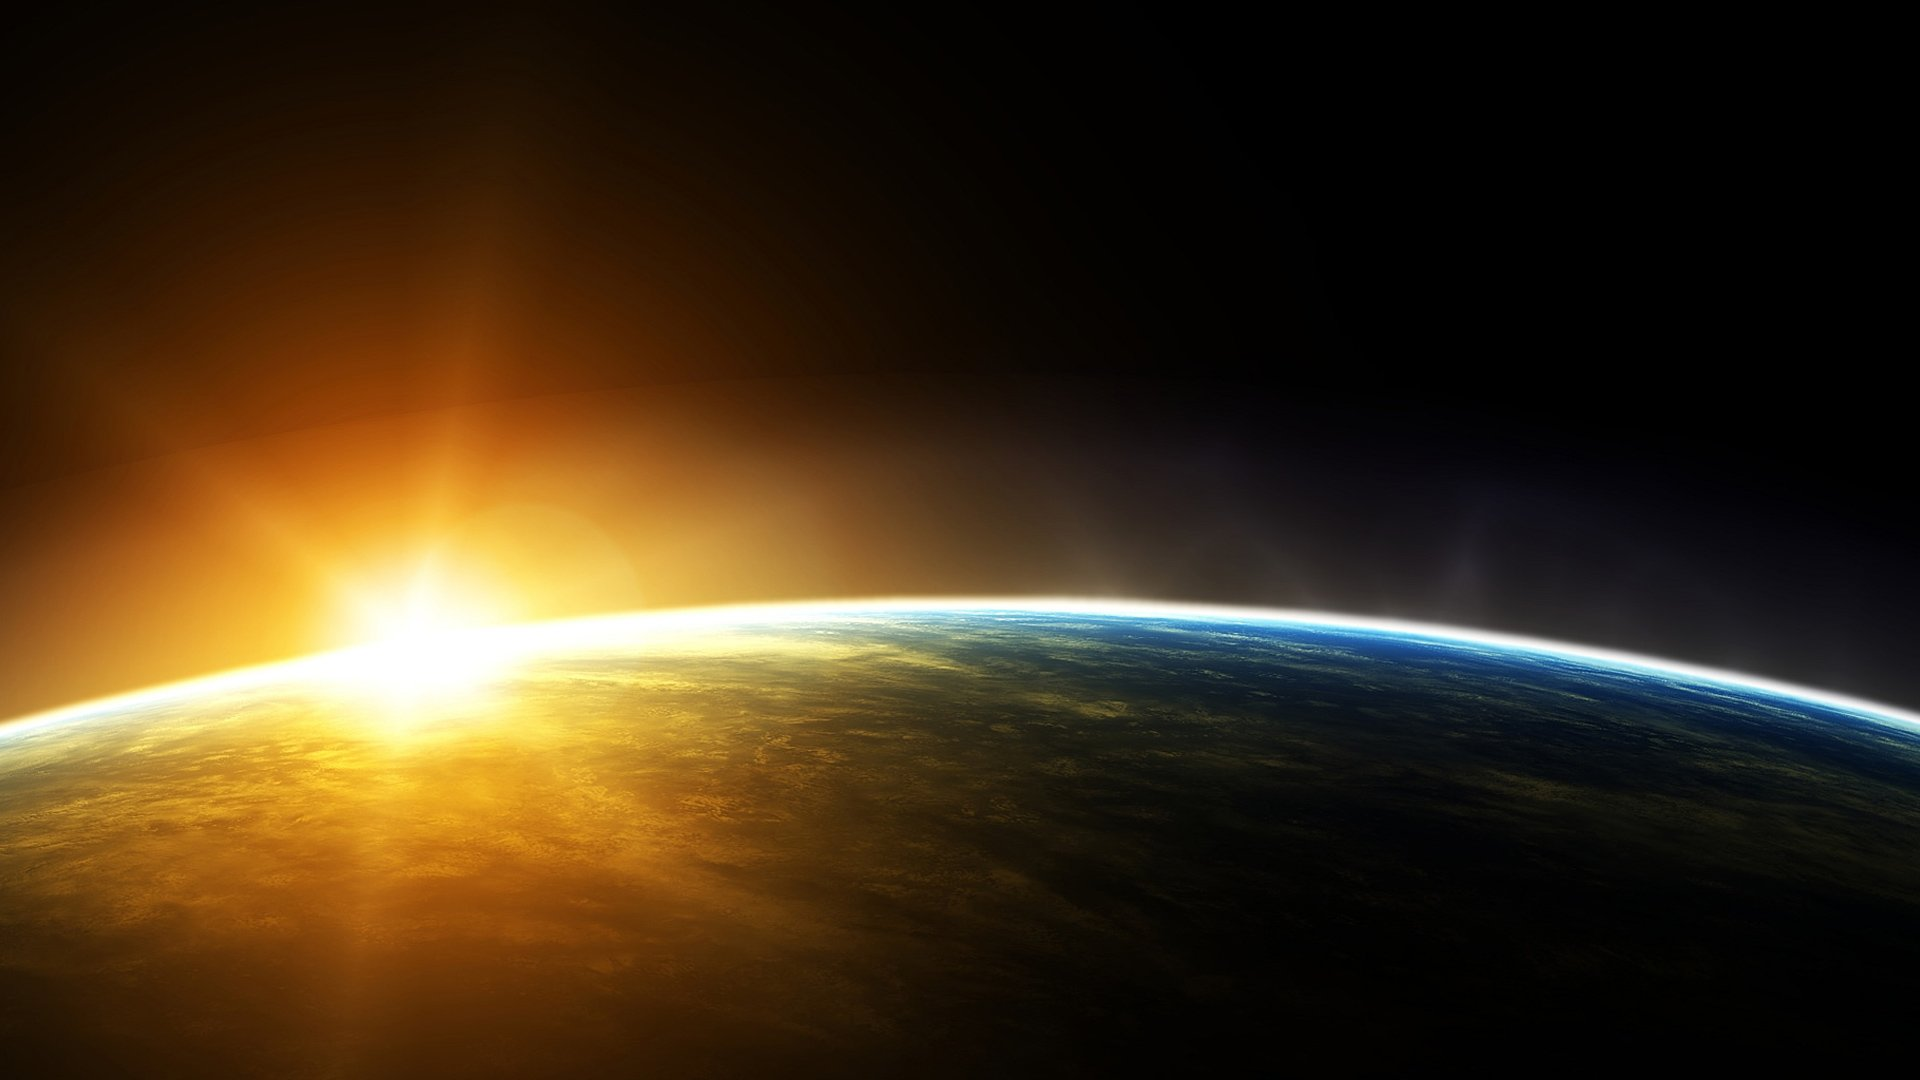 nasa desktop backgrounds - photo #24